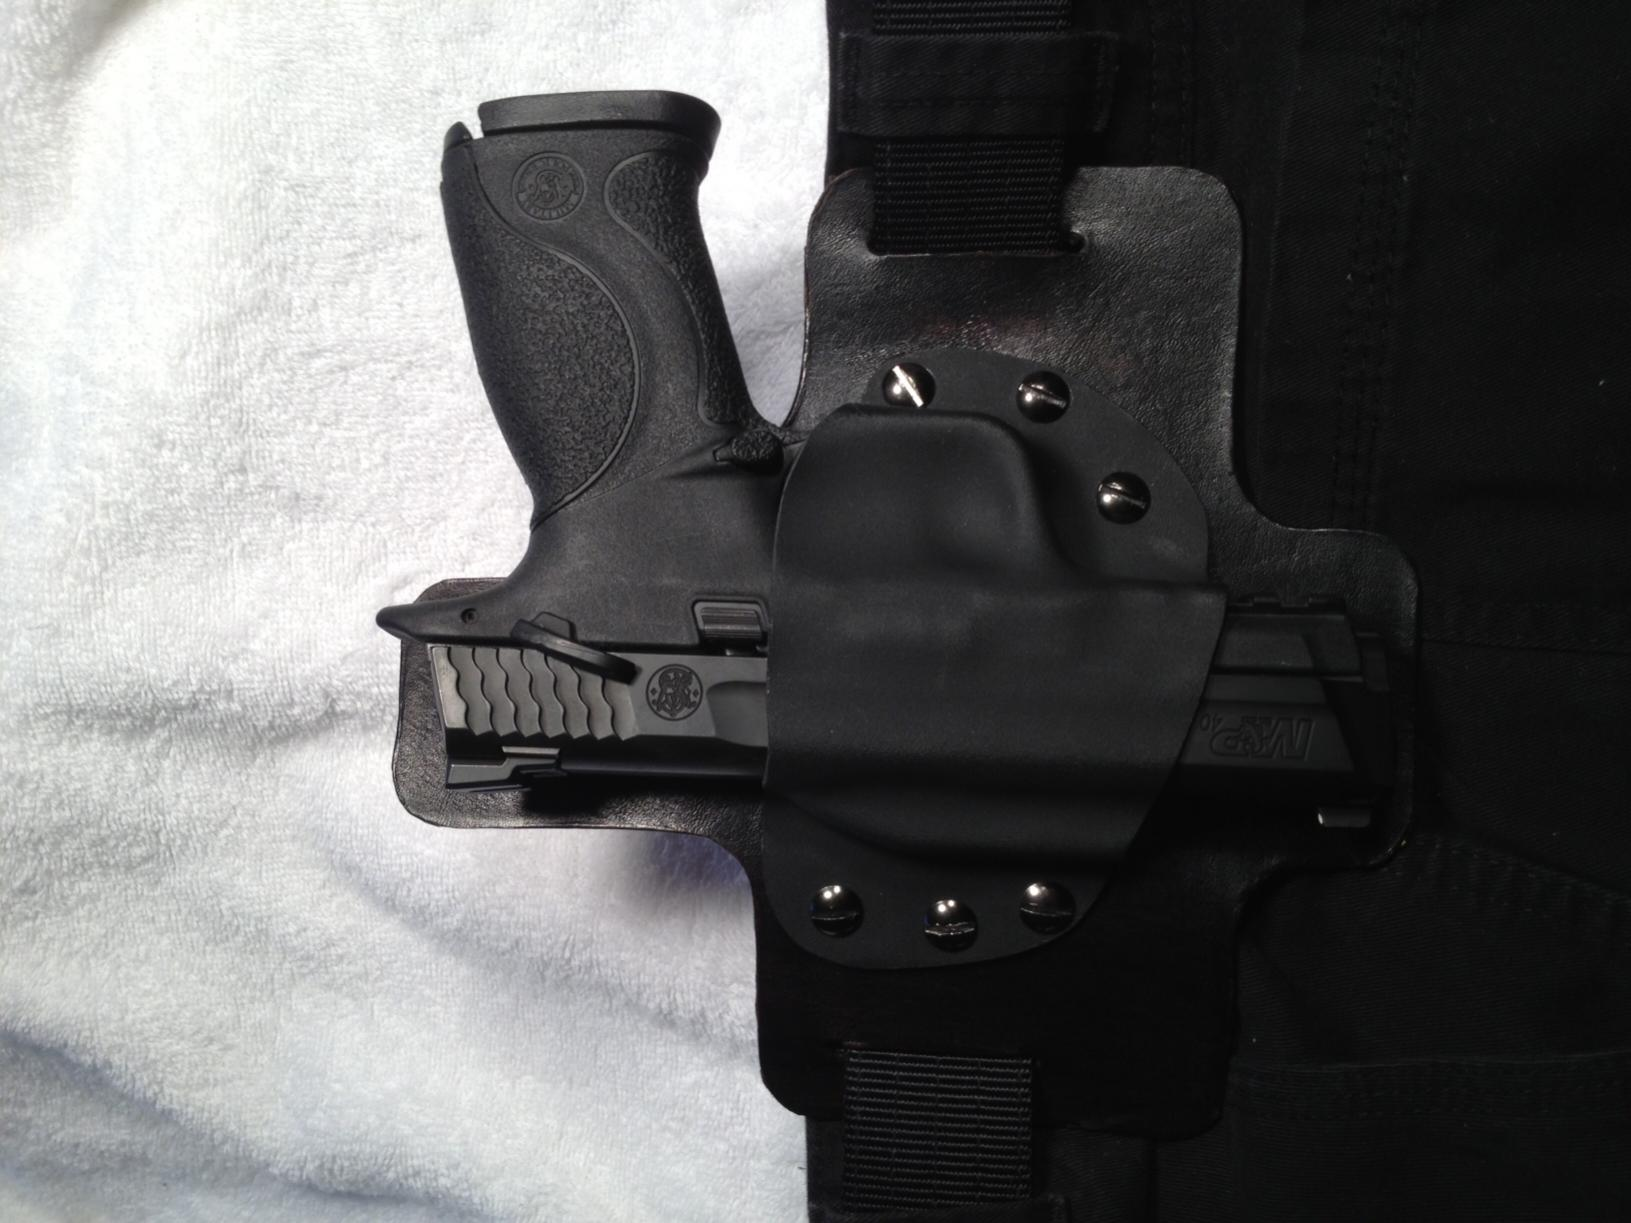 So, who's EDC is a full-size M&P?  Carried in what and where?-holster.jpg